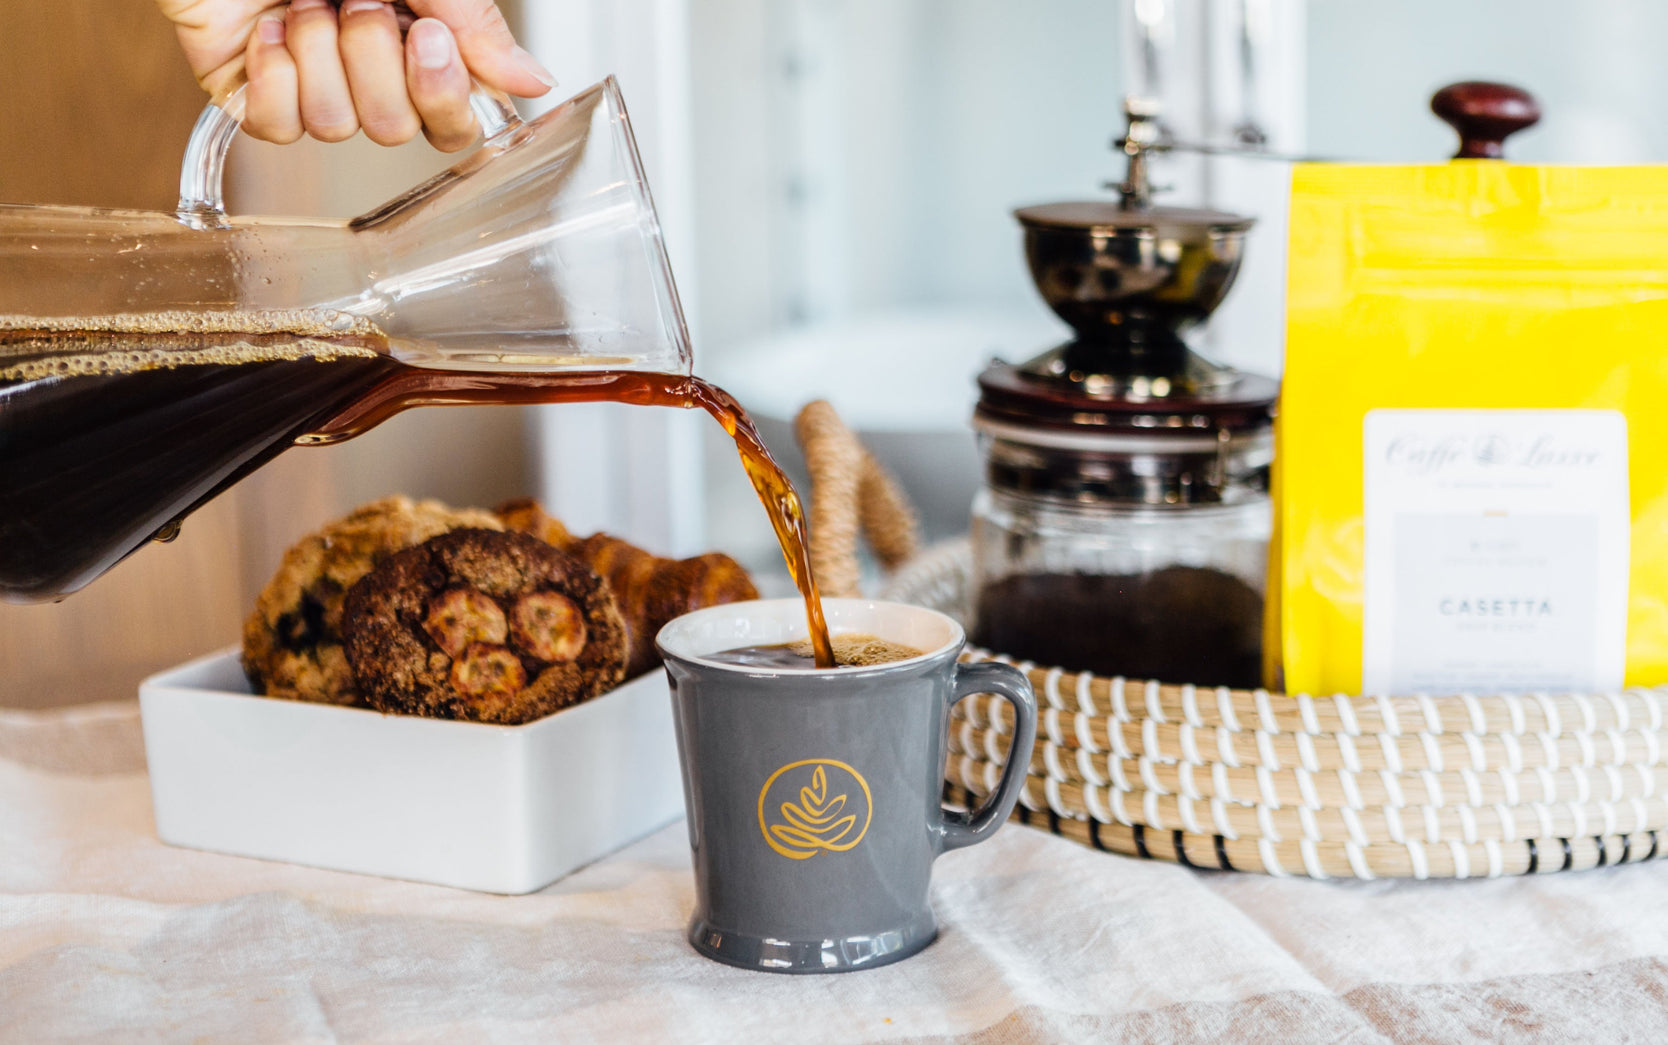 coffee being poured from a small 1 - 3 cup chemex into a grey mug, which bears a caffe luxxe logo in gold. in the background are pastries, a bag of coffee, and a manually operated grinder.